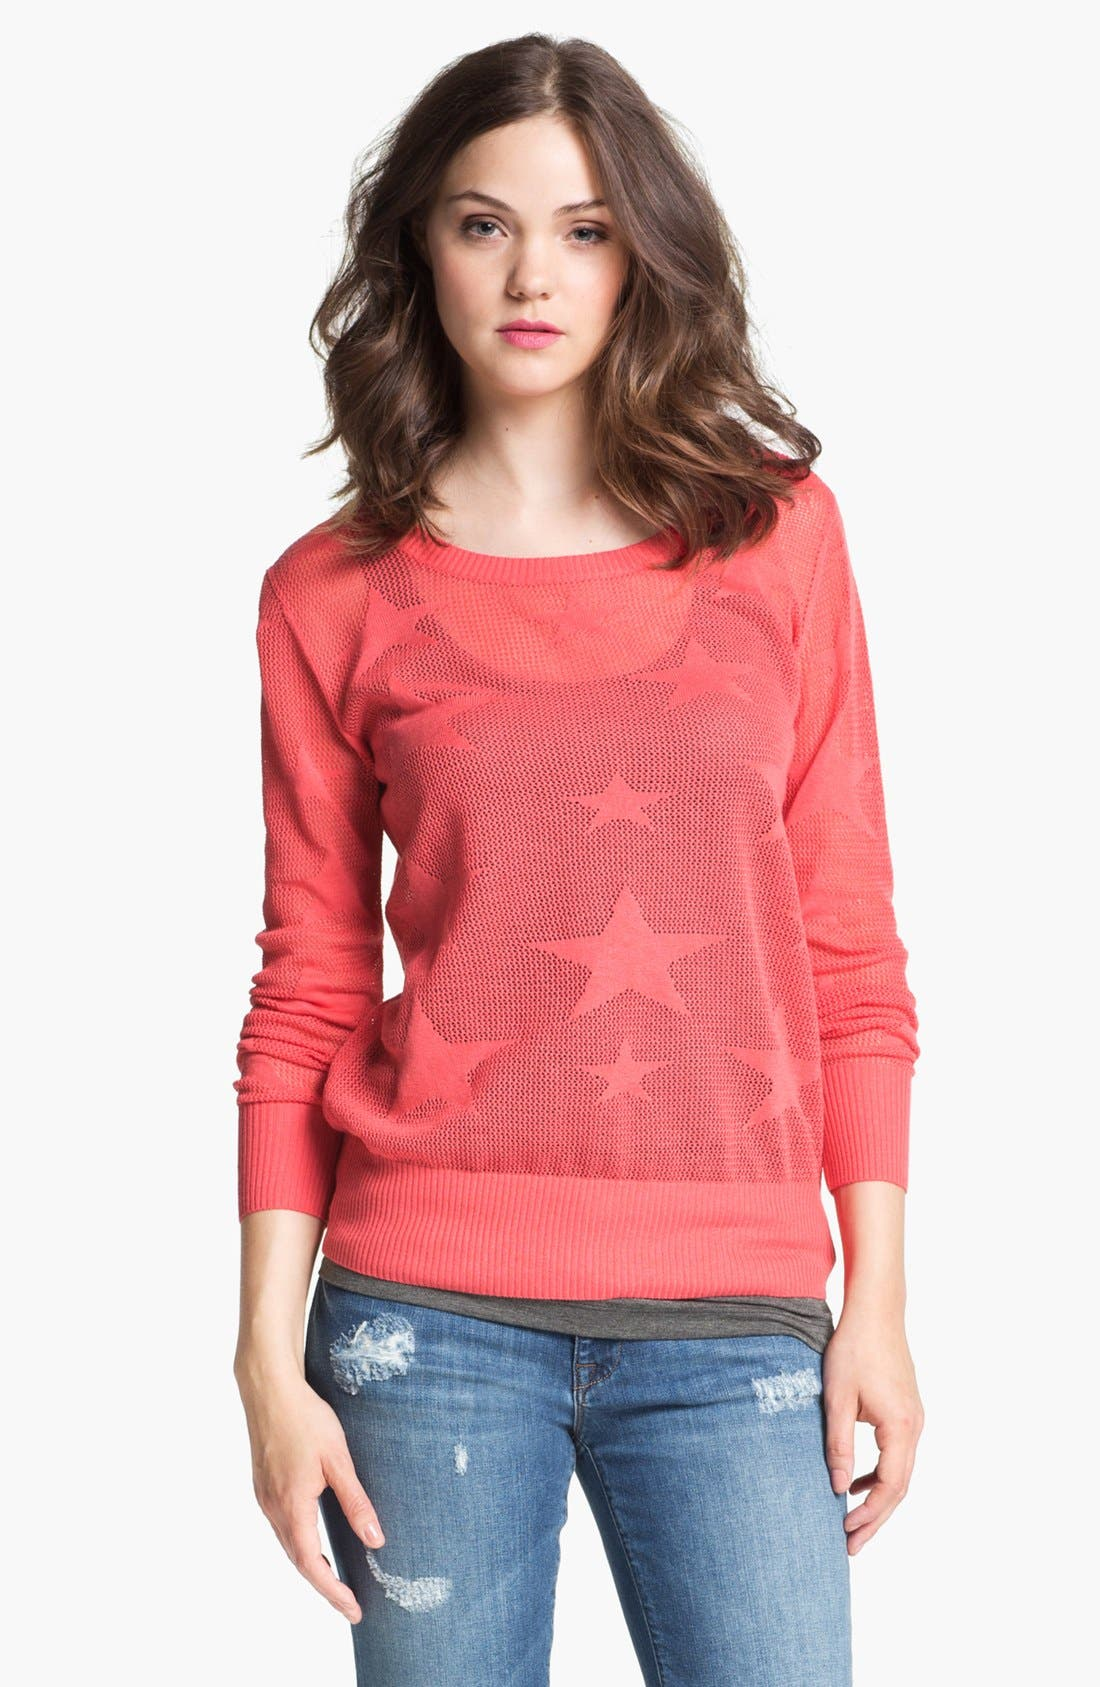 Main Image - Max & Mia Star Sweater